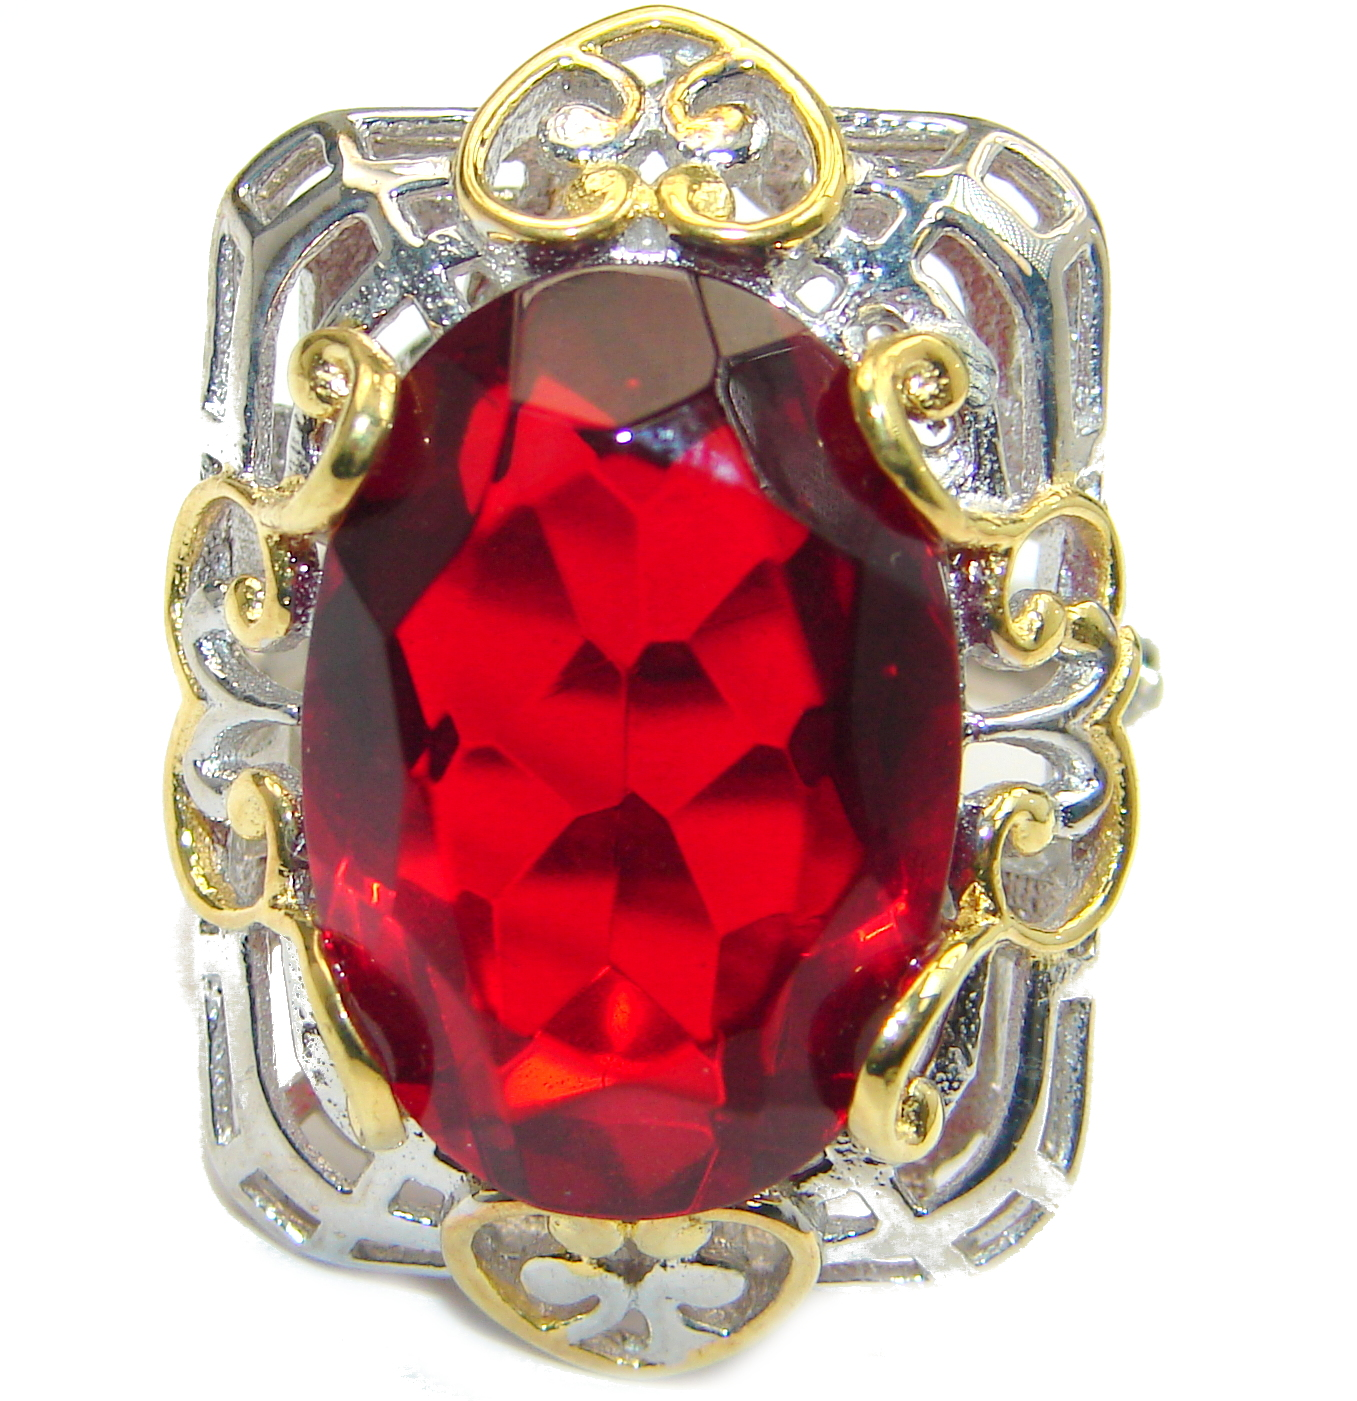 Ruby color Quartz Topaz two tones .925 Sterling Silver handcrafted Ring s. 8 1/4